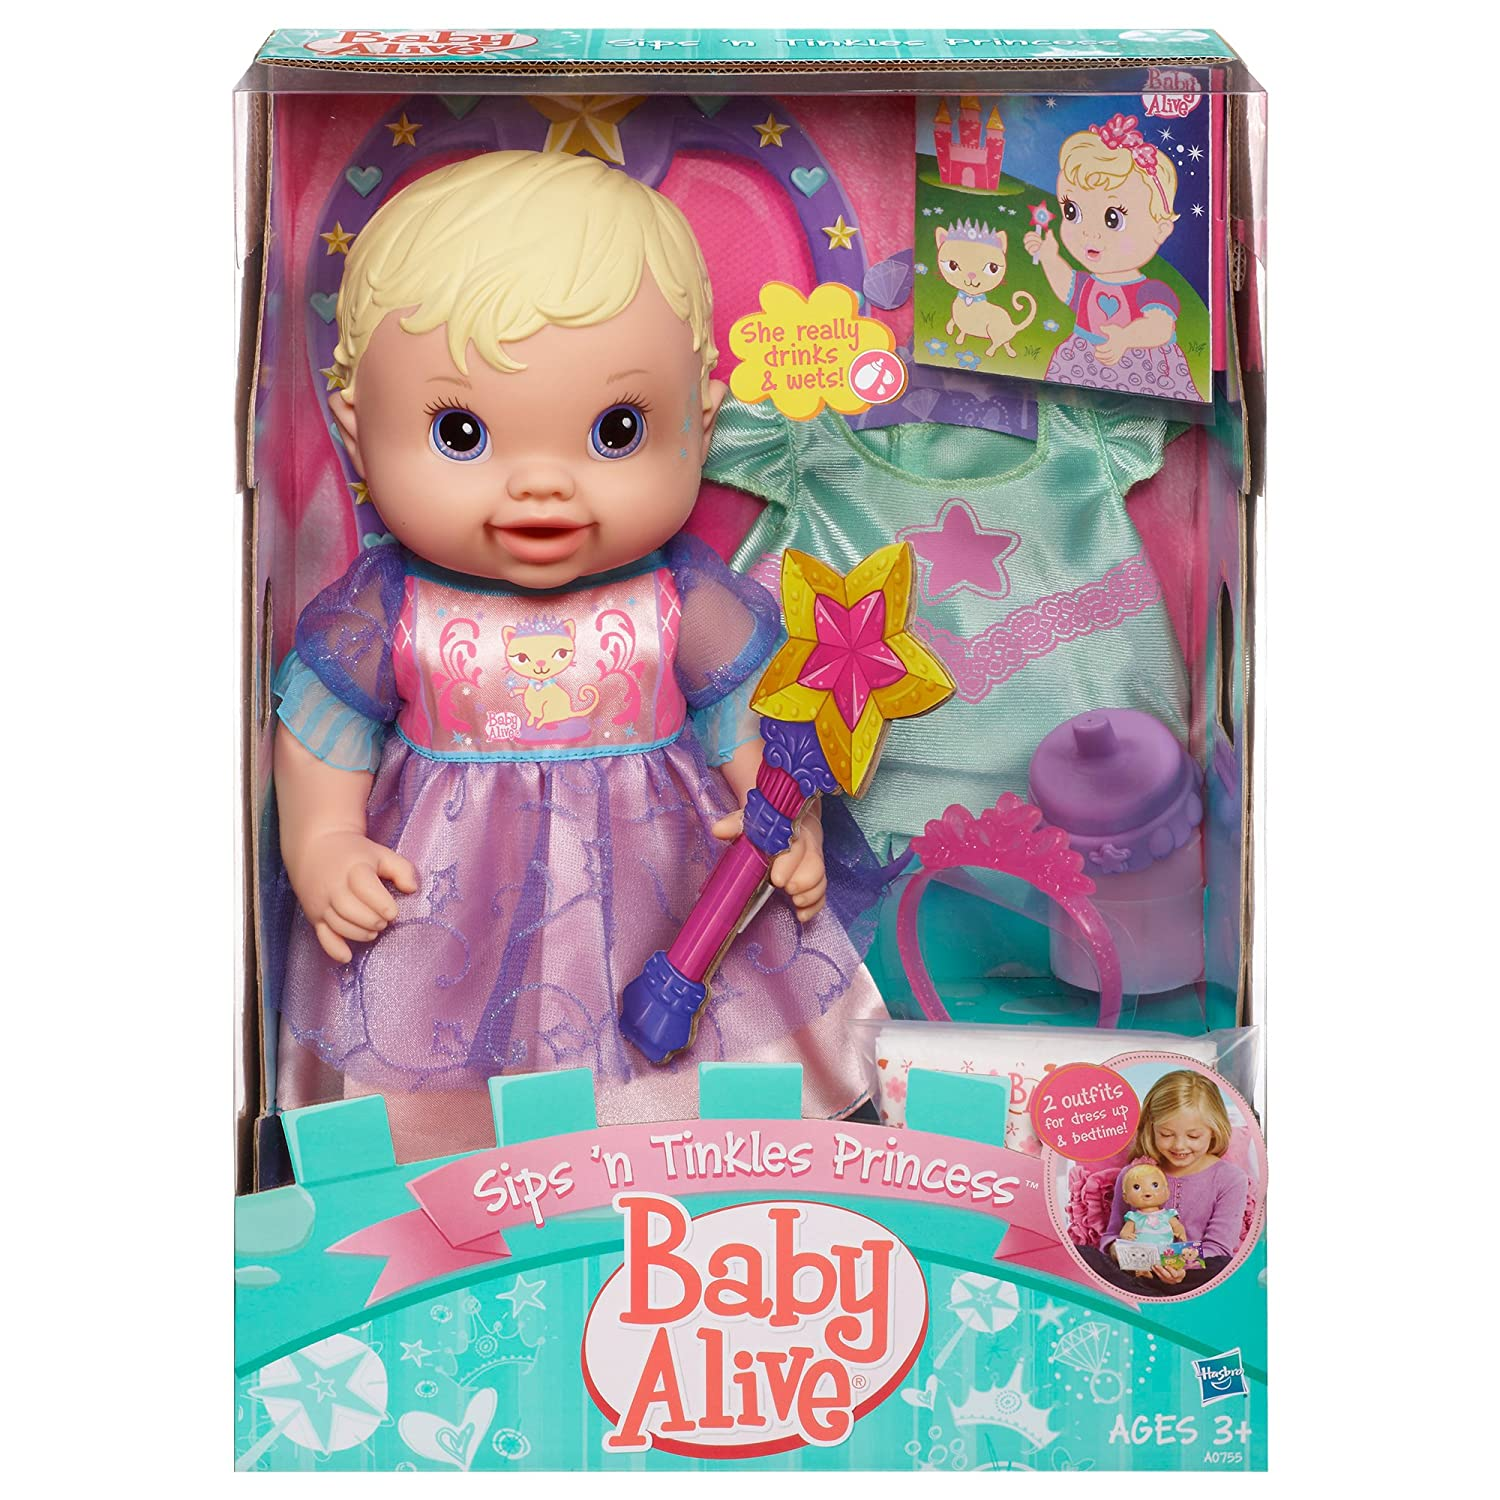 Buy Baby Alive Princess Doll Blonde line at Low Prices in India